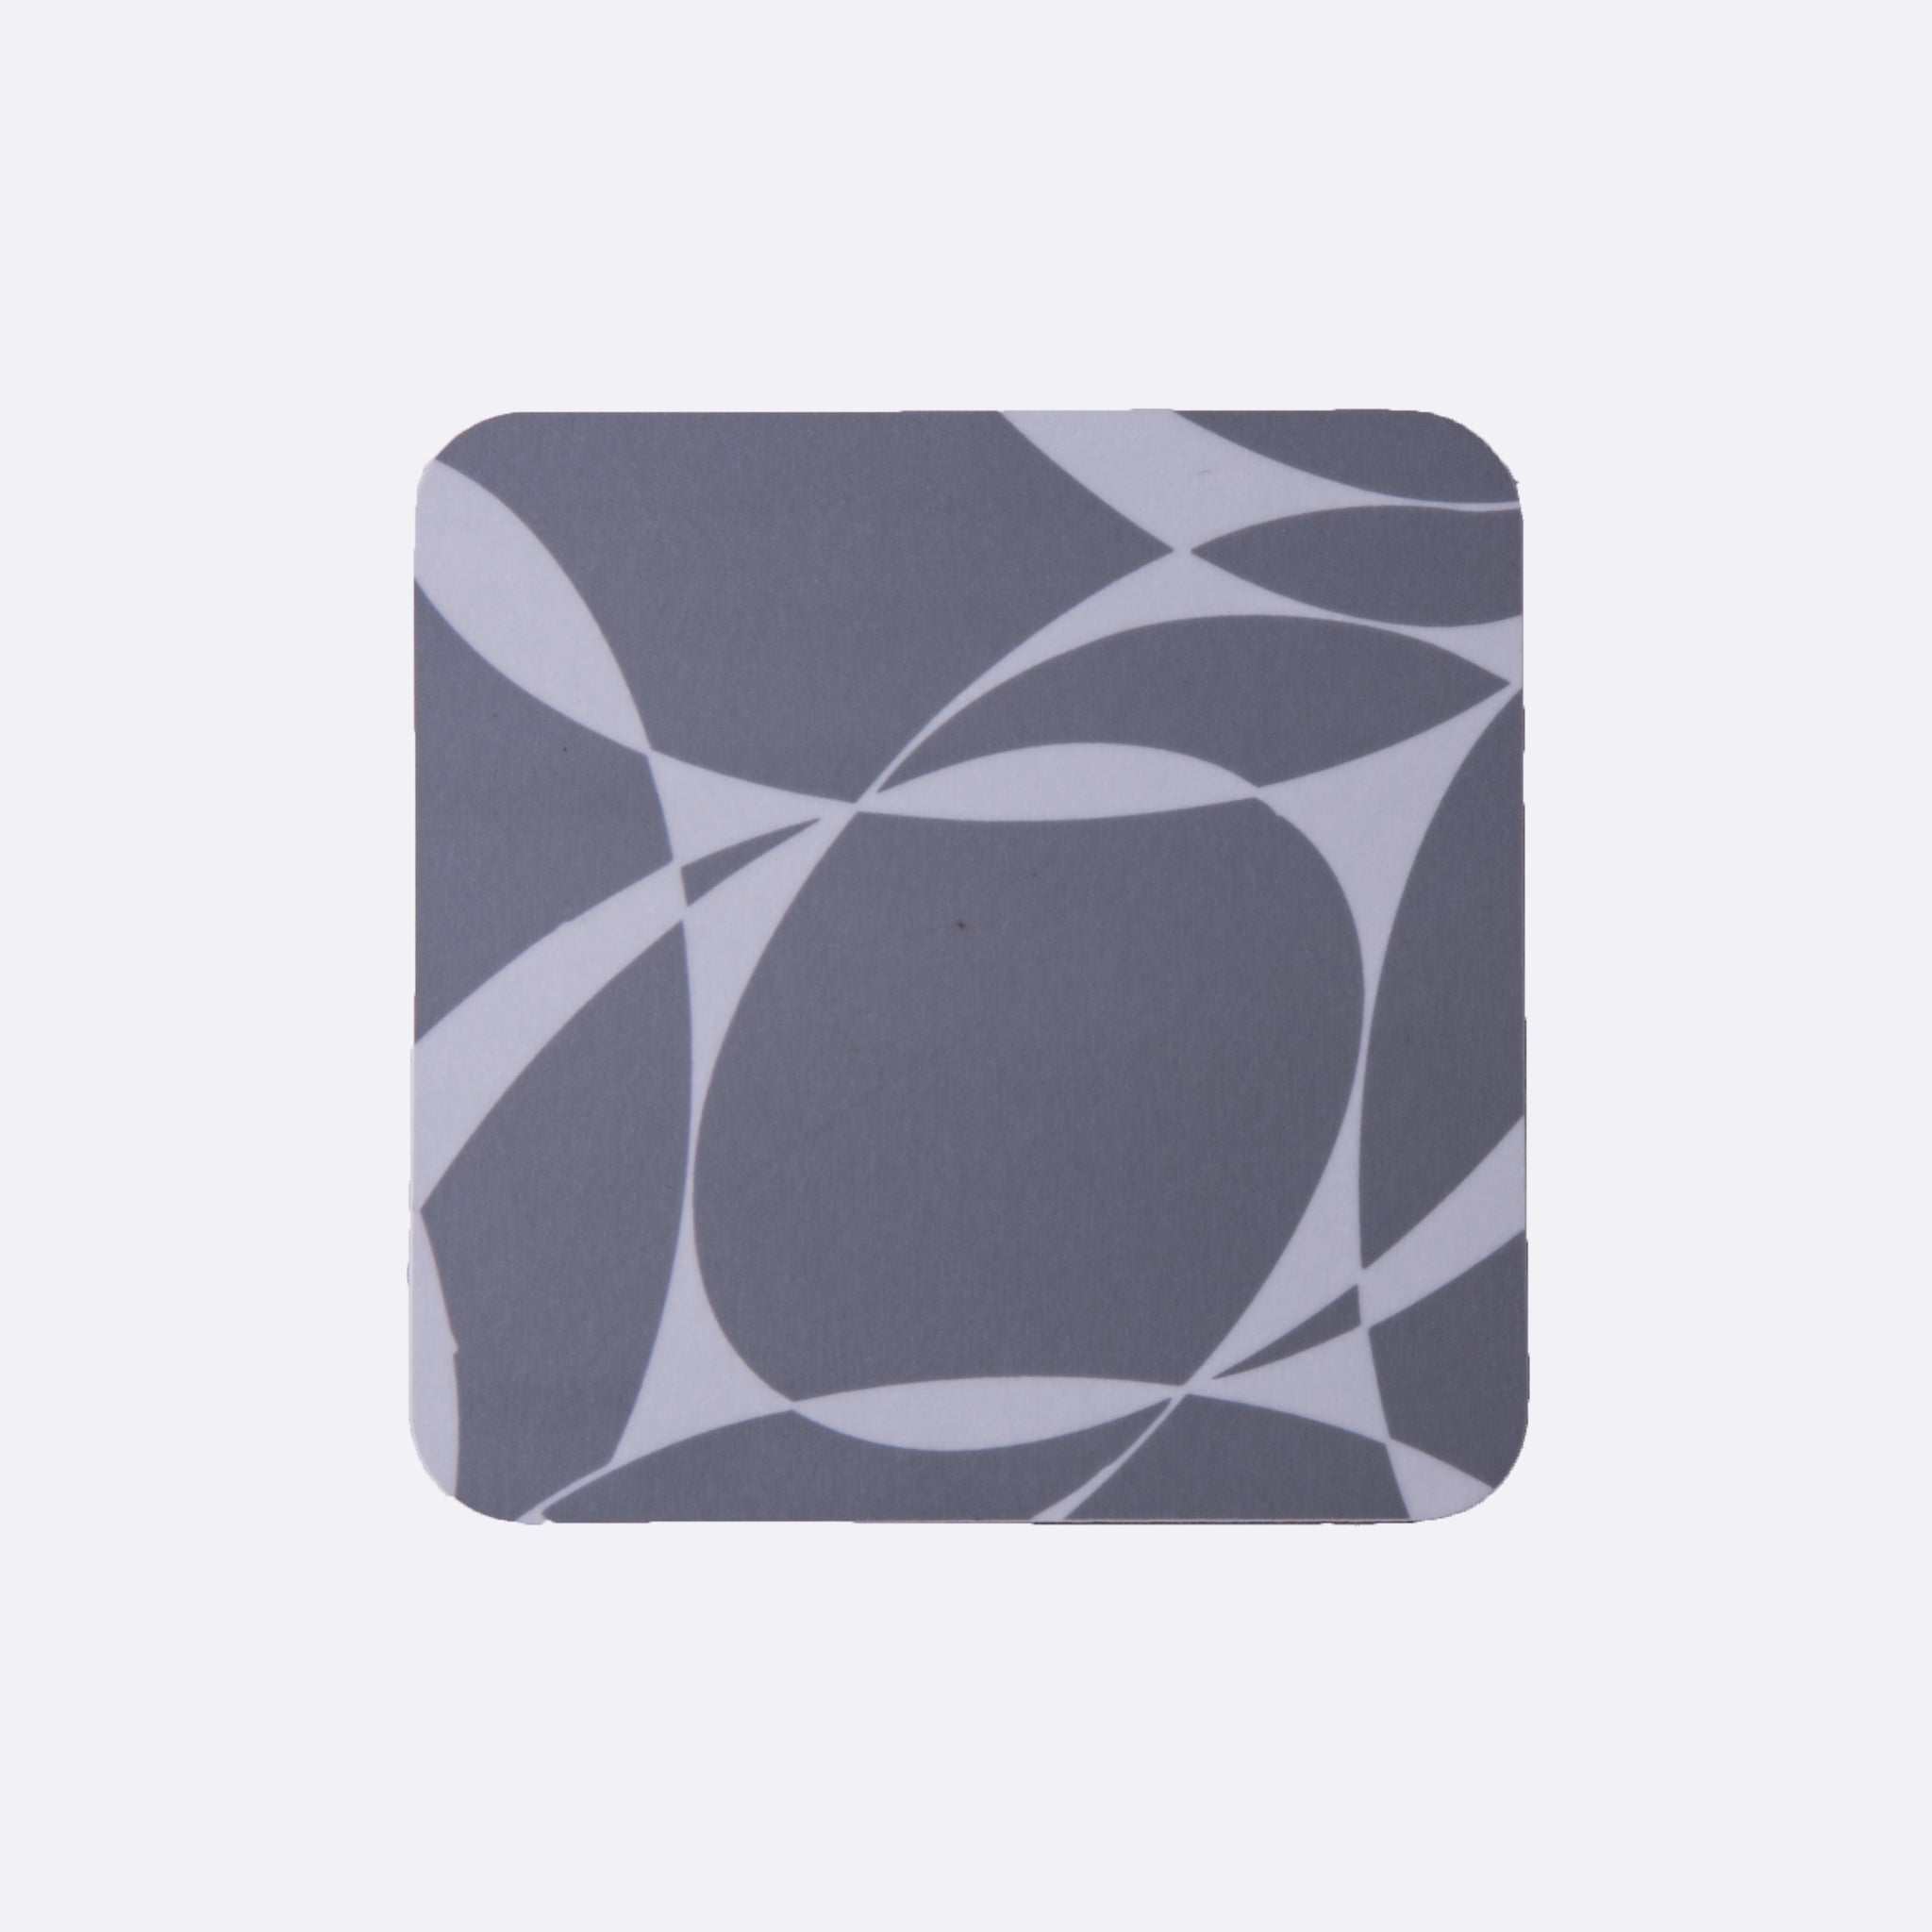 grey abstract coaster set from MAiK London. Set of 4 coasters.